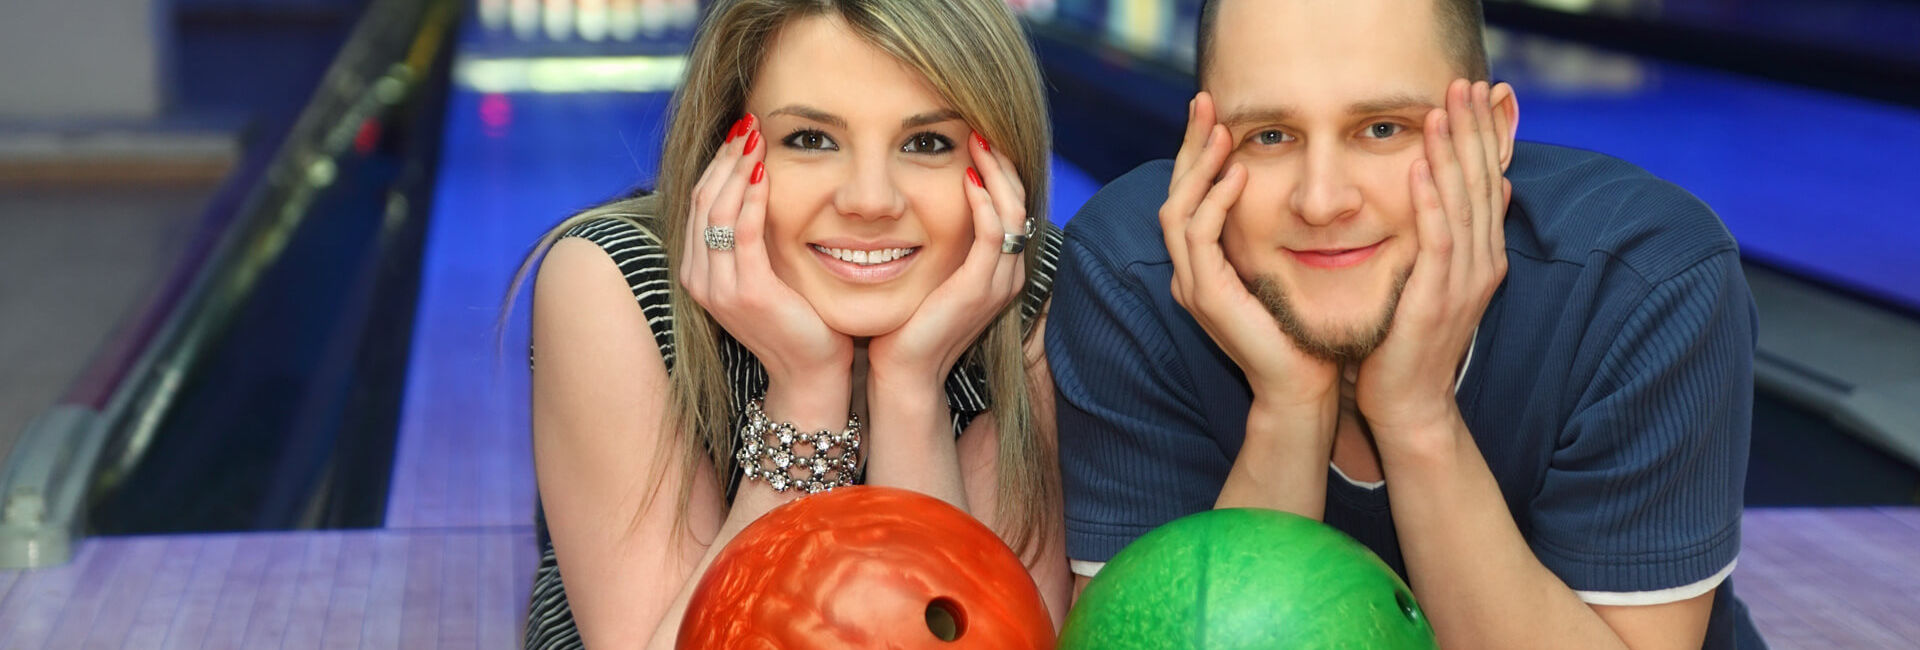 Couple in front of a bowling lane